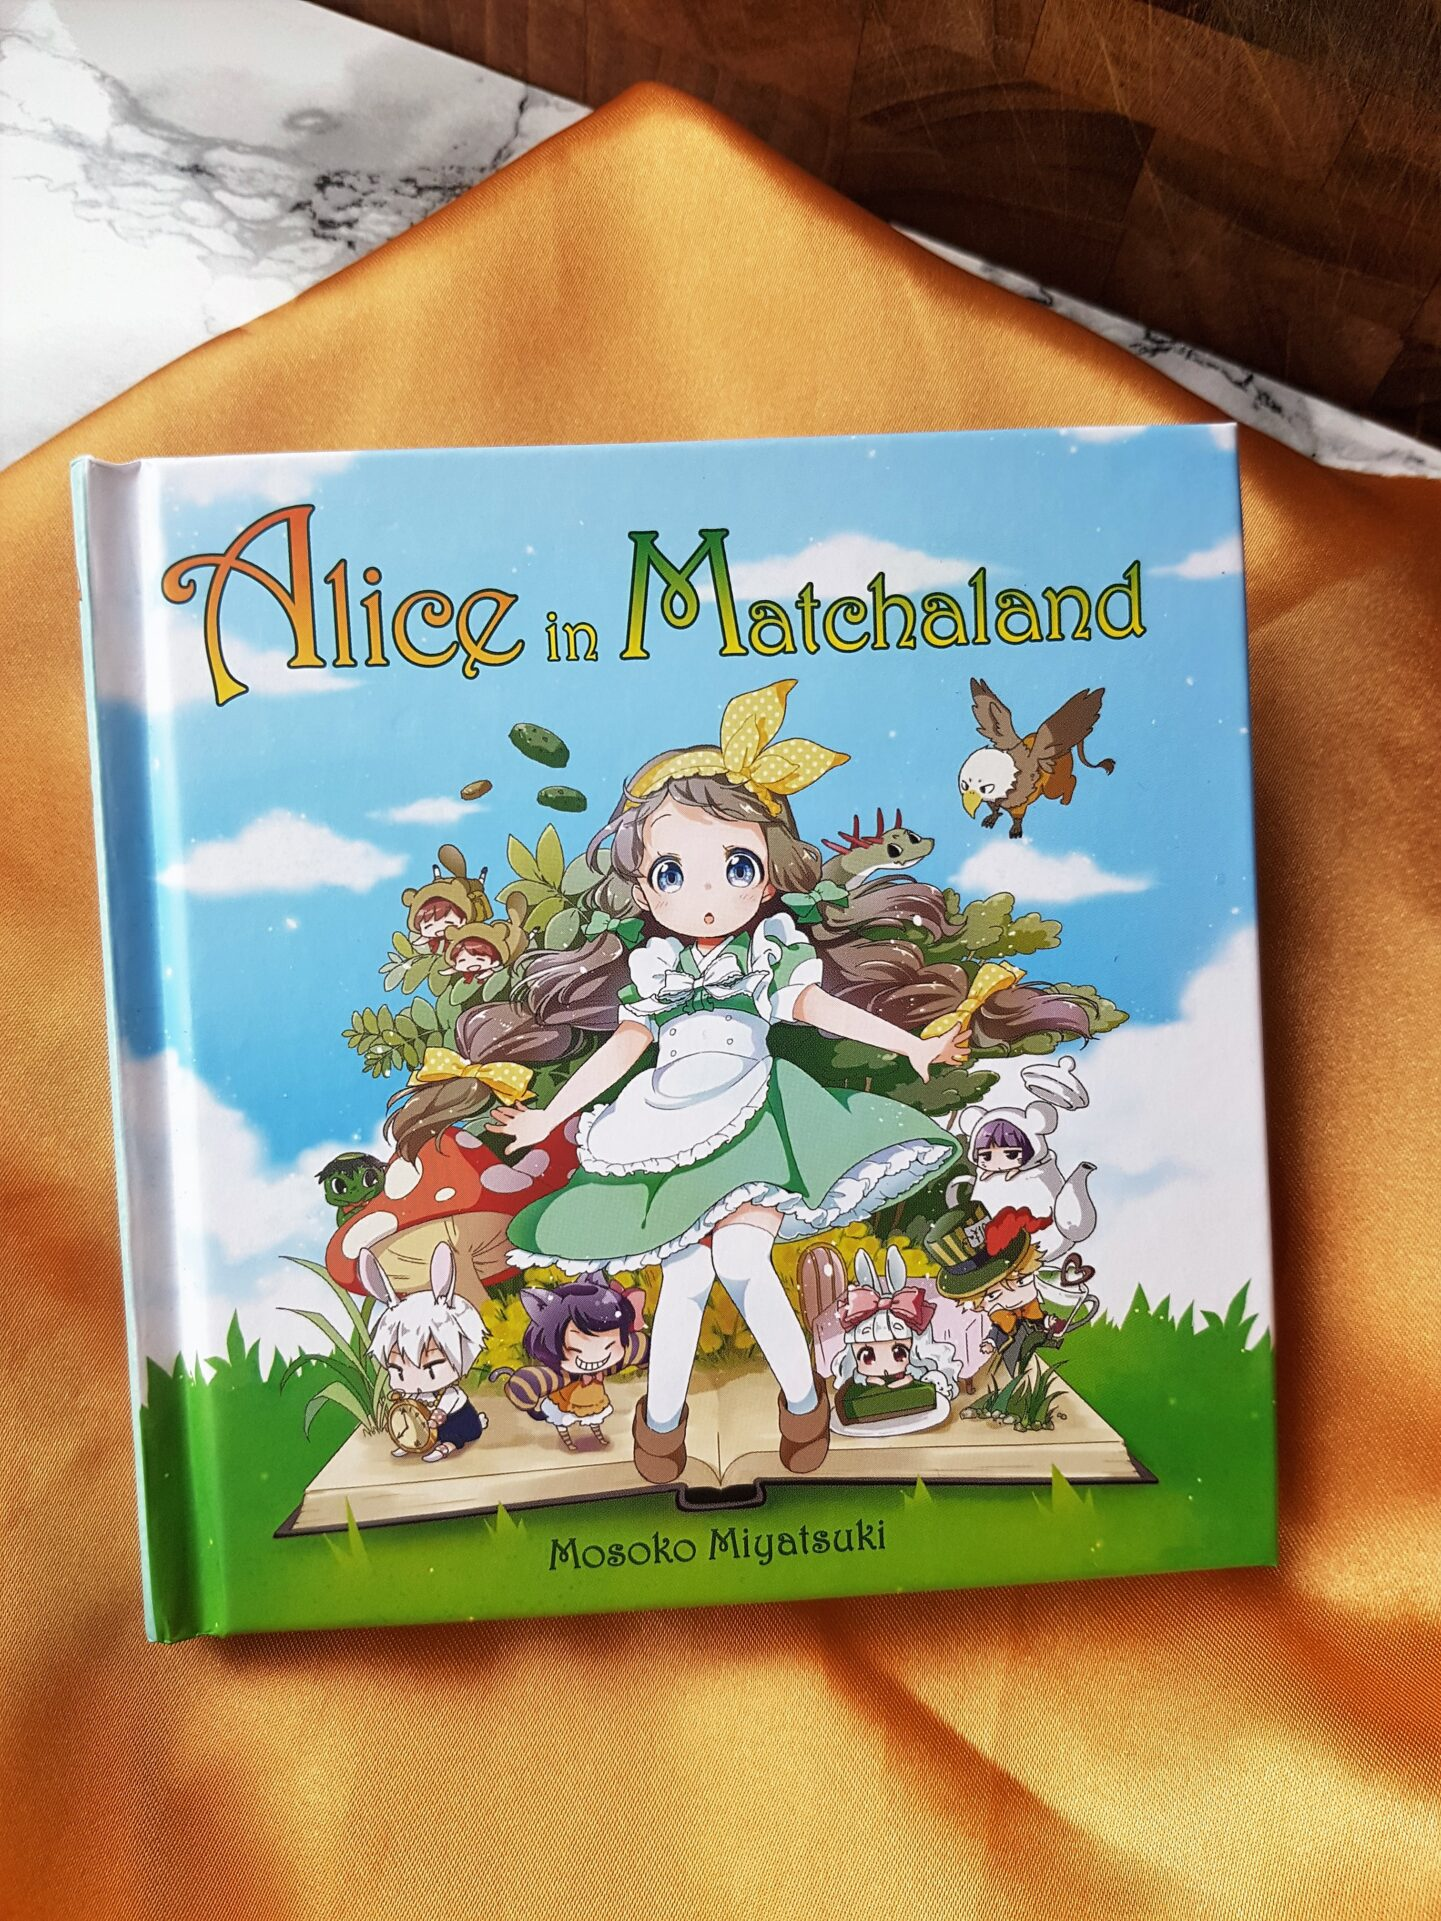 Anmeldelse: Alice in Matchaland